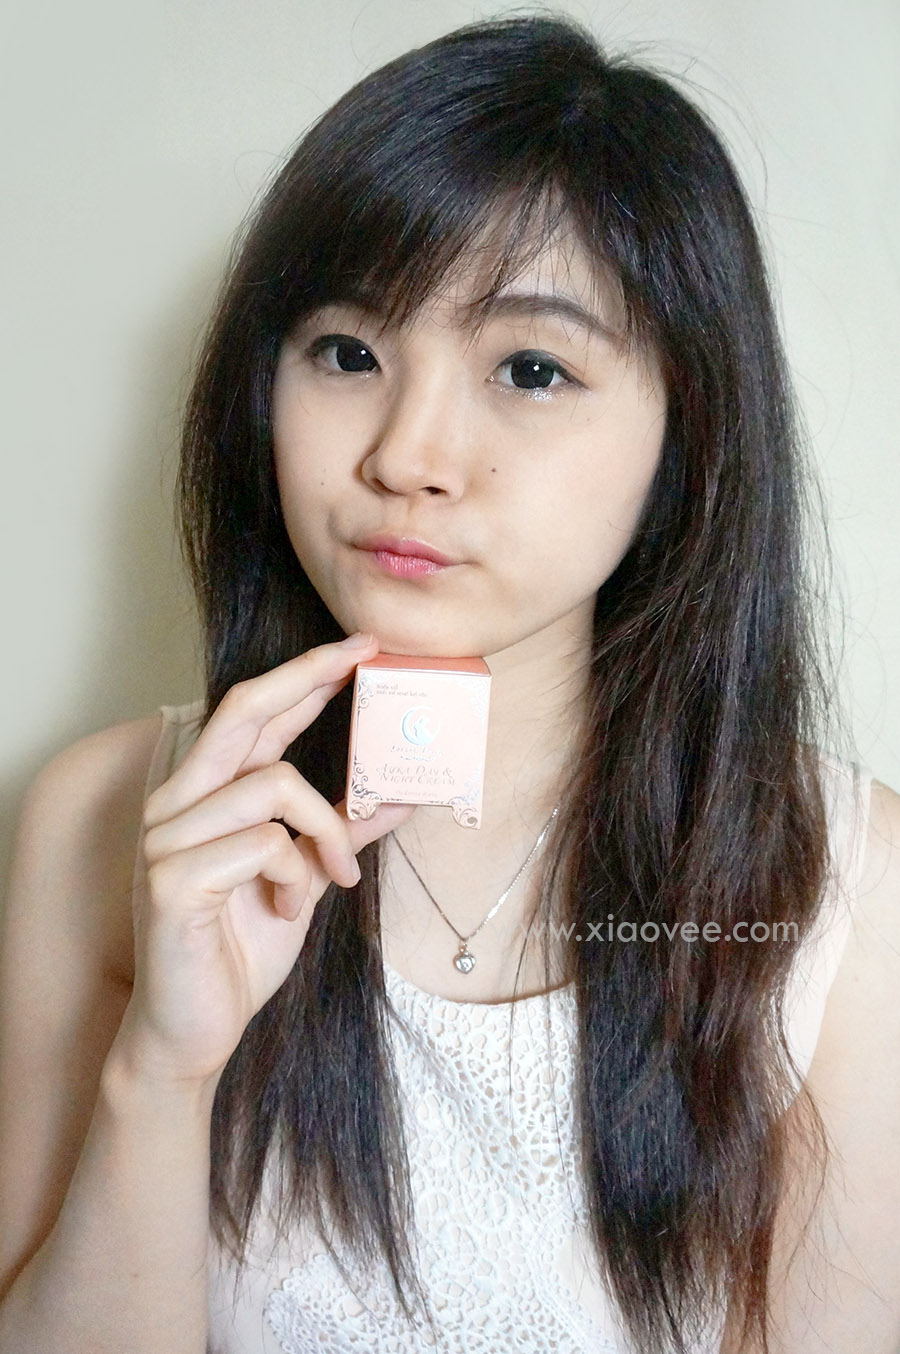 Thailand Aura Day Night Cream, Little Baby Thailand, Indonesian Beauty Blogger, Blogger from Indonesia, Blogger Indonesia, Beauty Blogger from Indonesia, Top Beauty Blogger Indonesia, Top Indonesian Beauty Blogger,